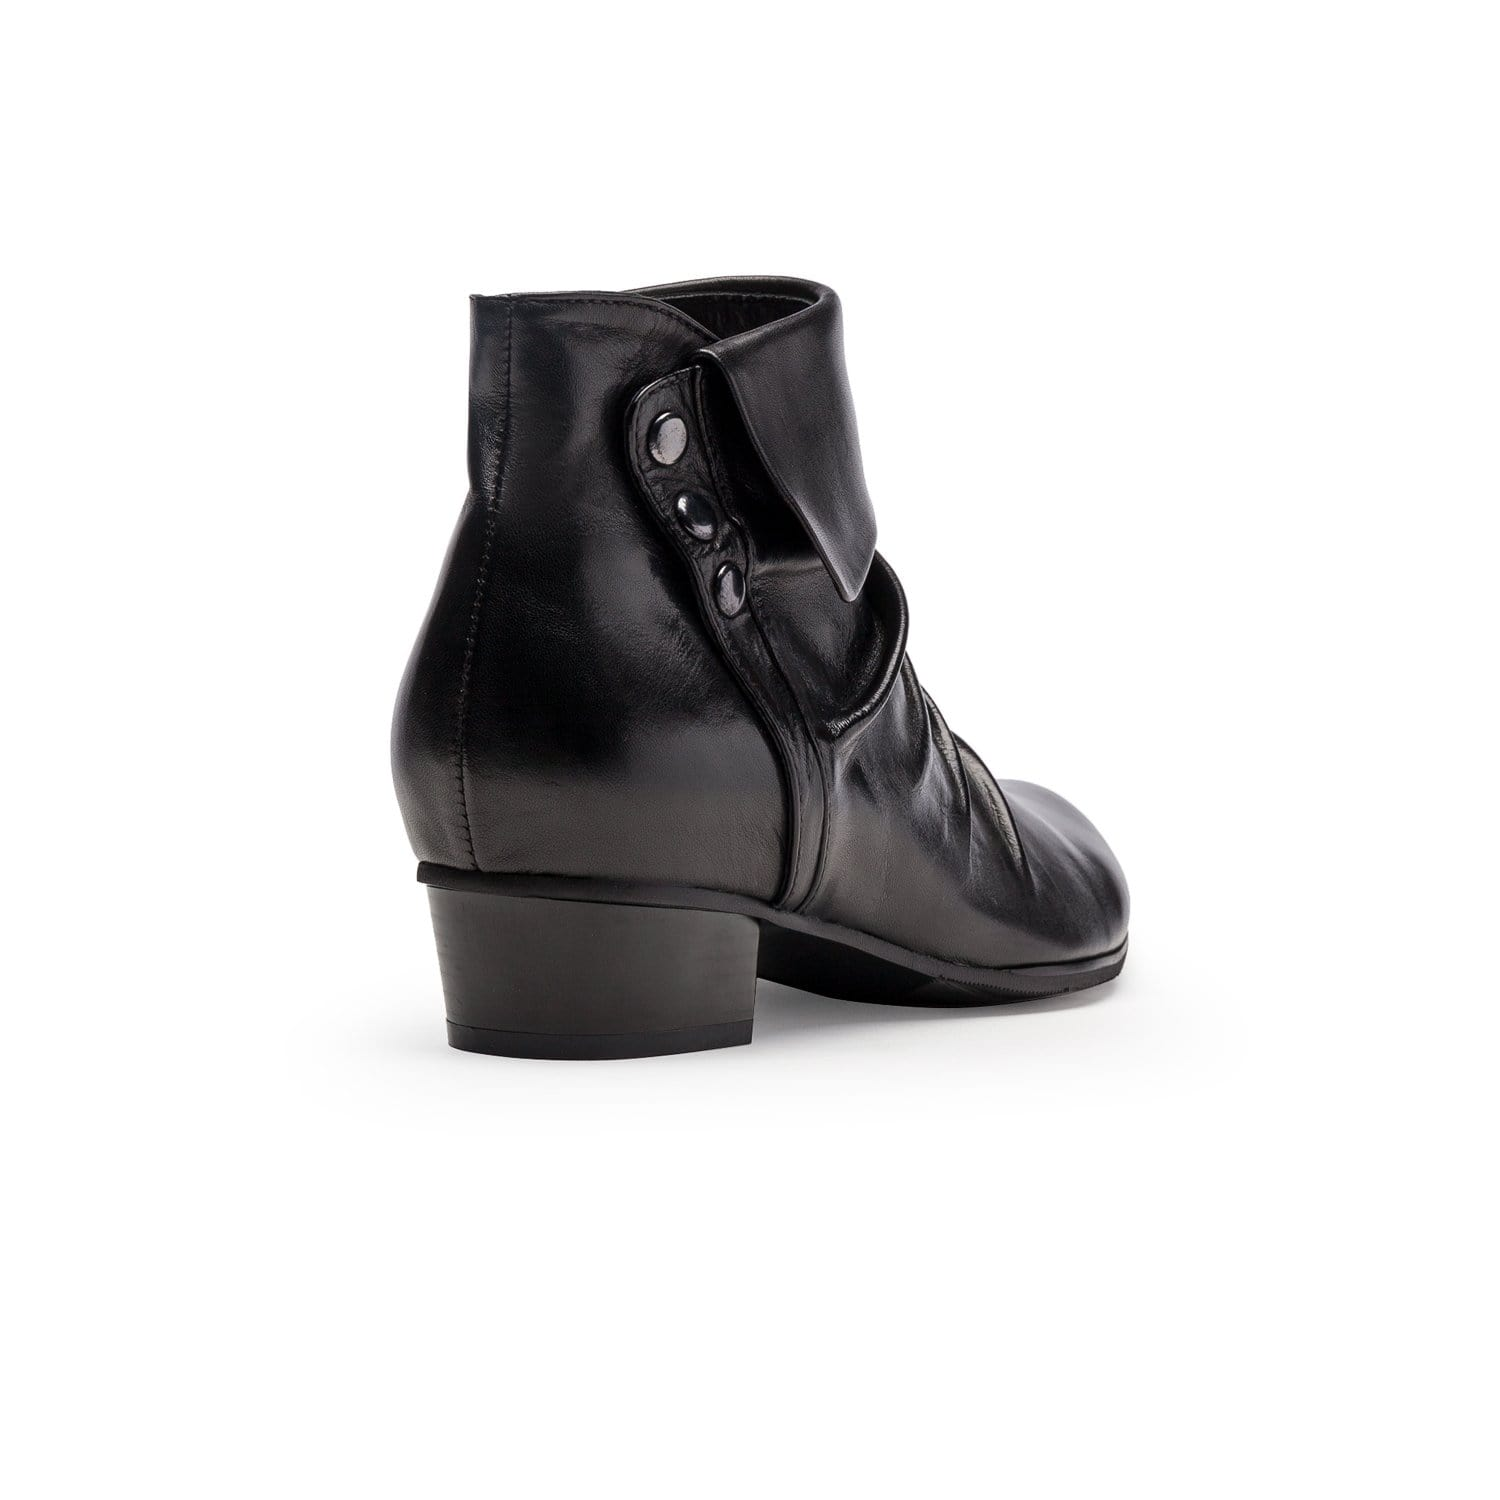 Regarde La Ciel Stefany 278 Women's Leather Cuffed Ankle Bootie Shoe